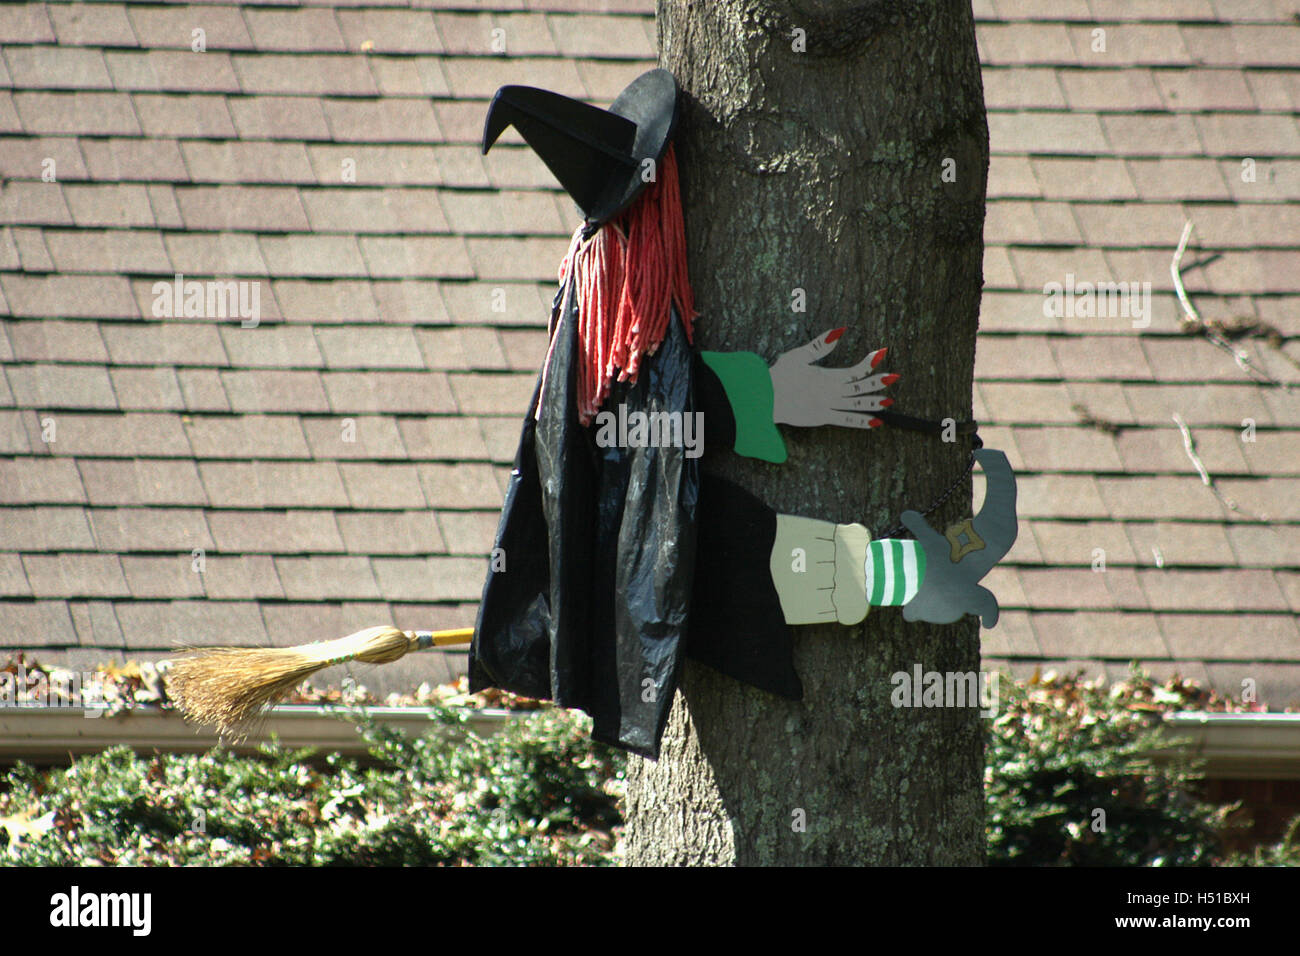 ical outdoor Halloween decoration of witch crushing into